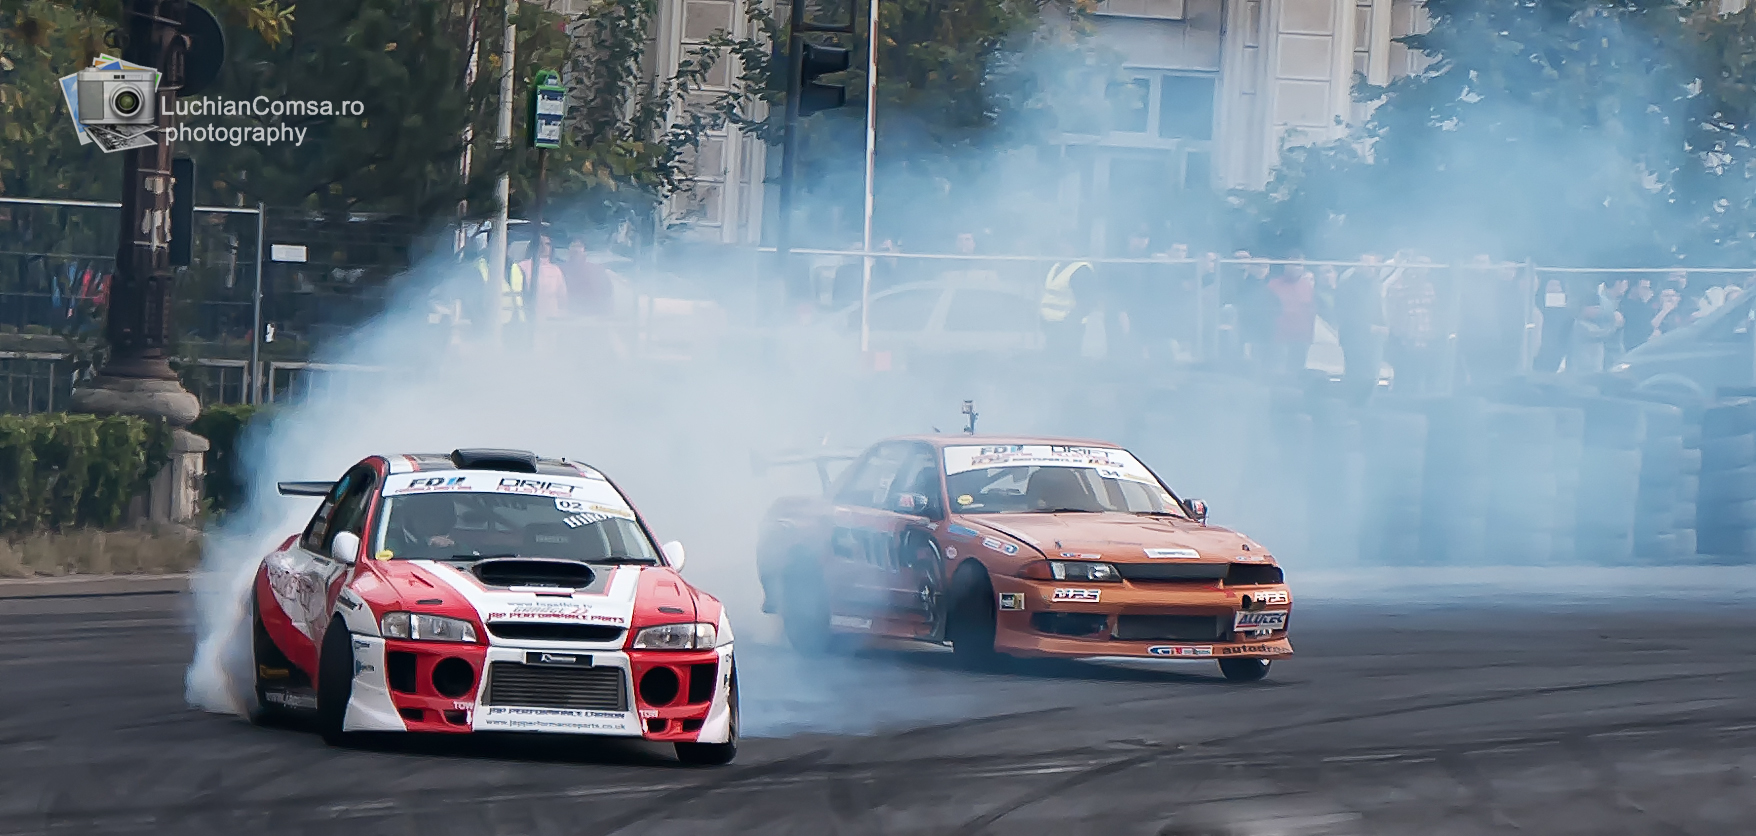 Drift Grand Prix Romania 2011 (Poze & Video)